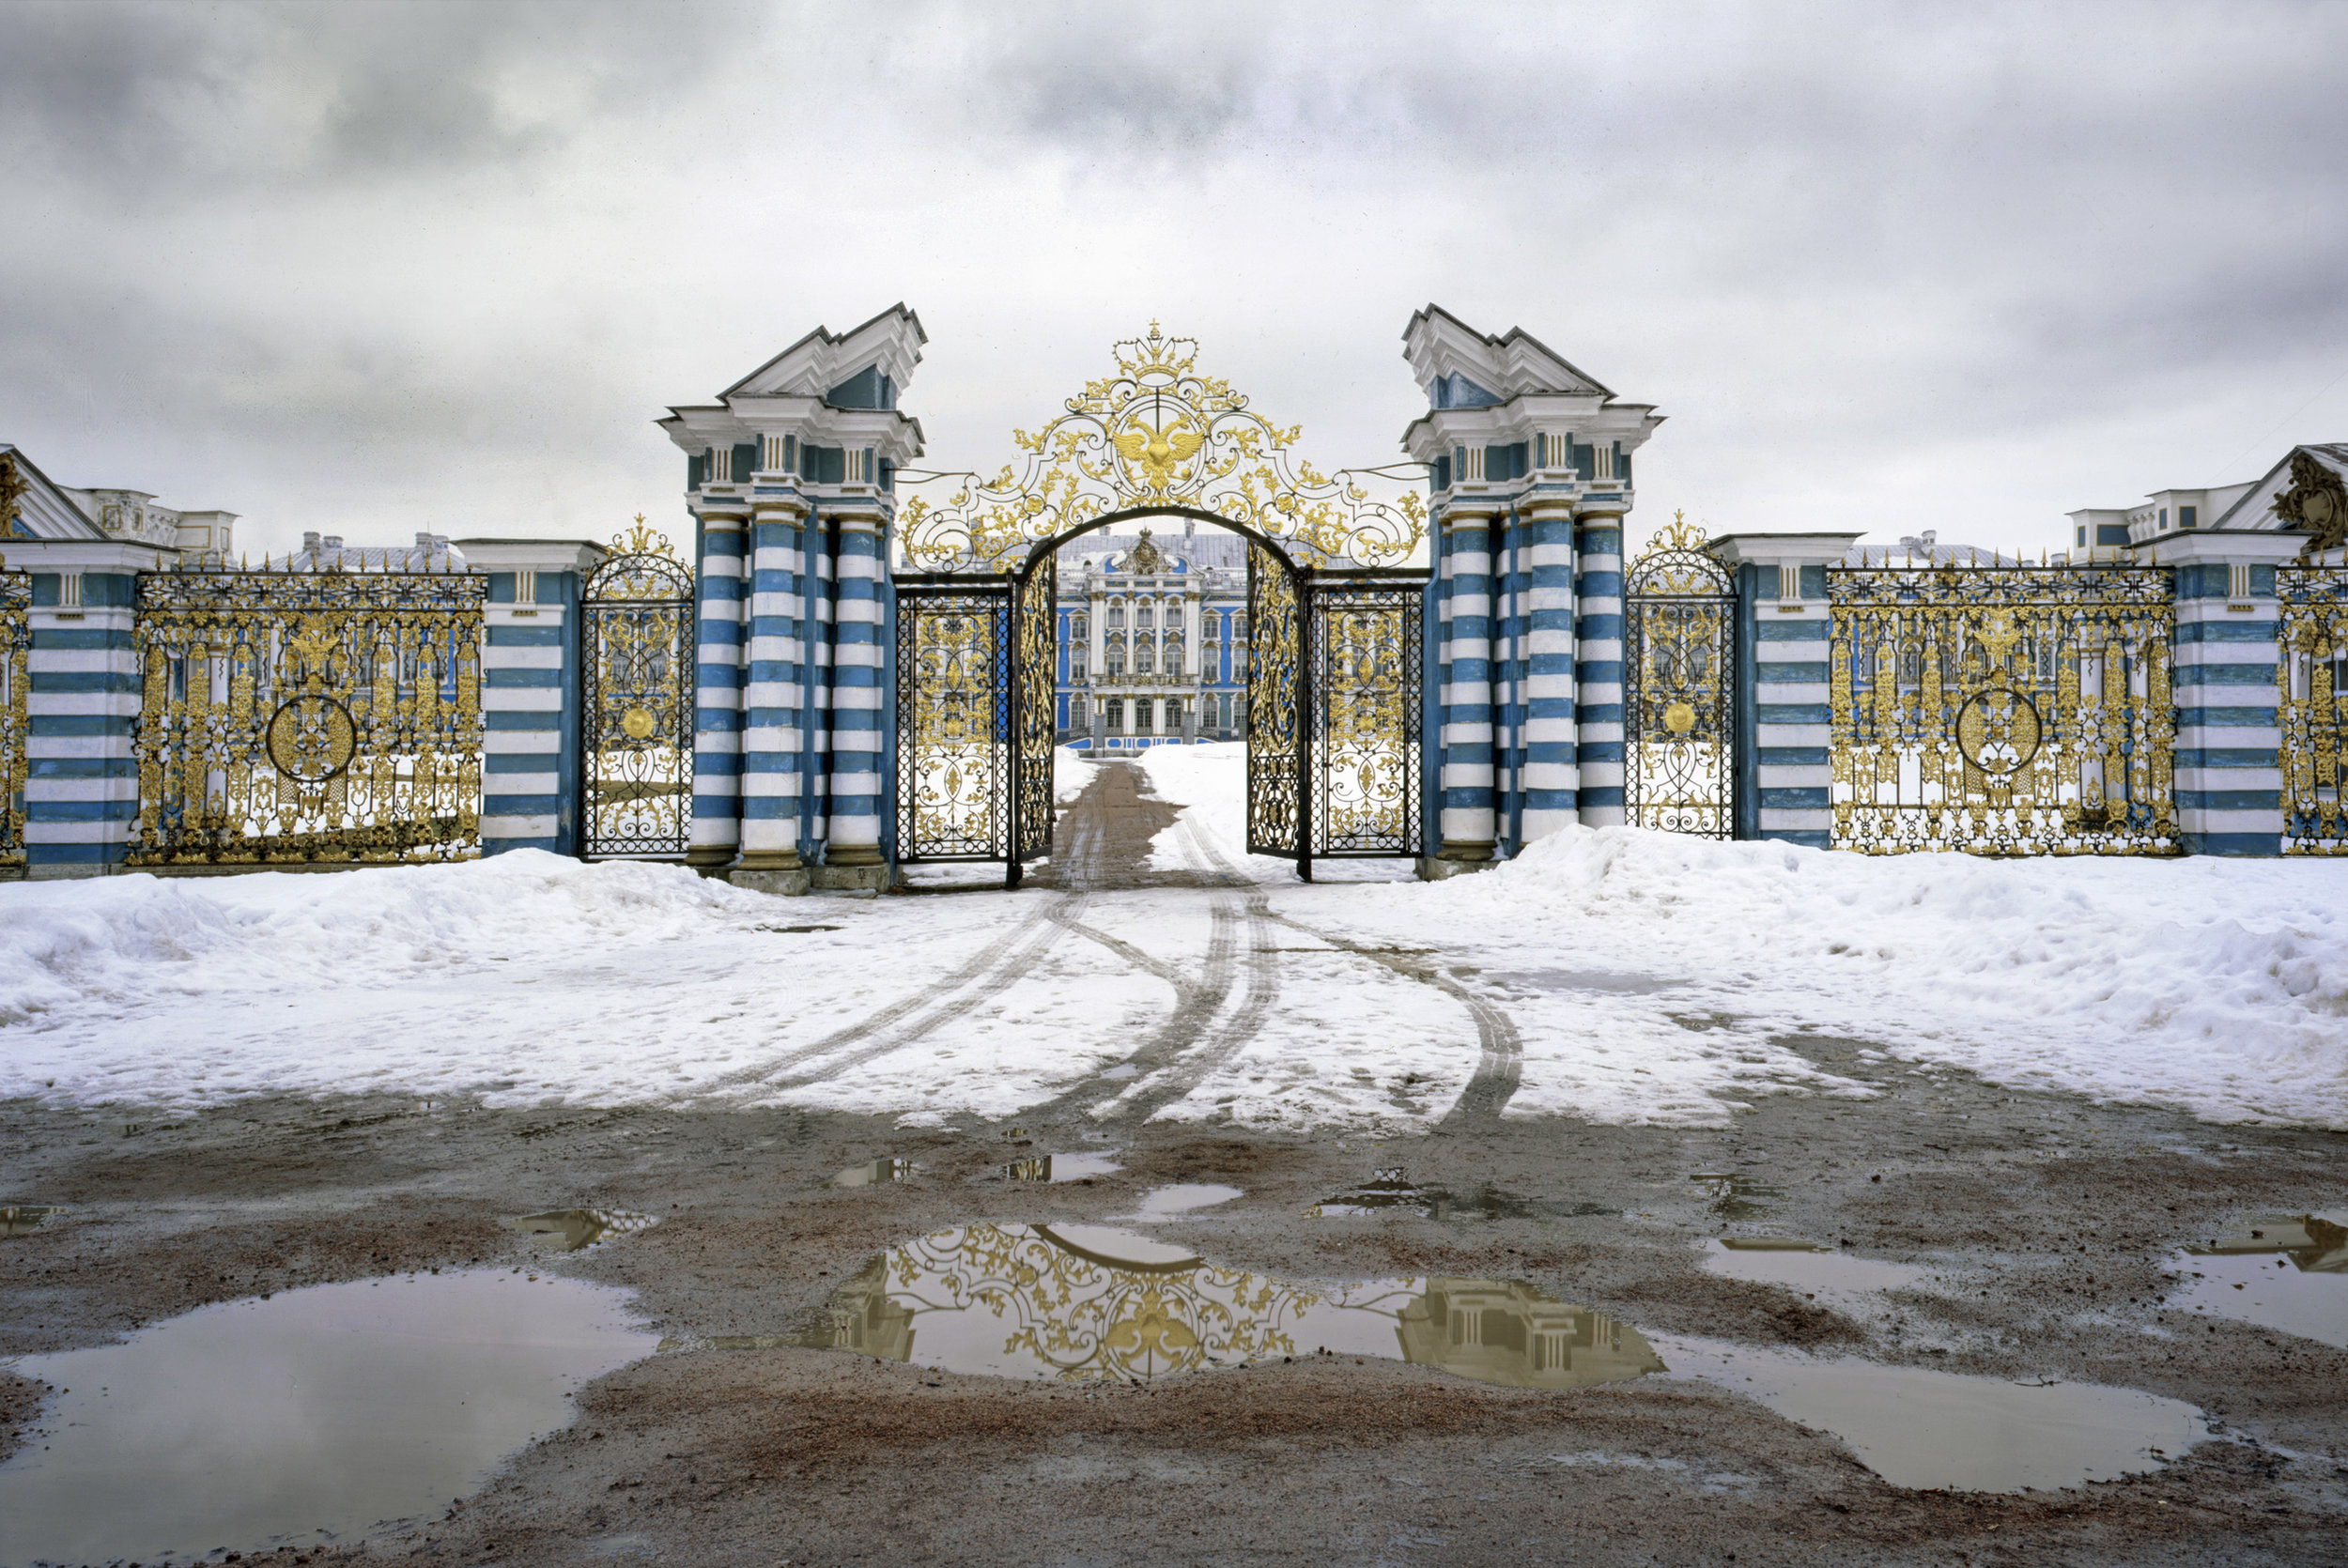 Golden Gate of the courtyard of Catherine Palace - Tsarskoye Selo, Russia